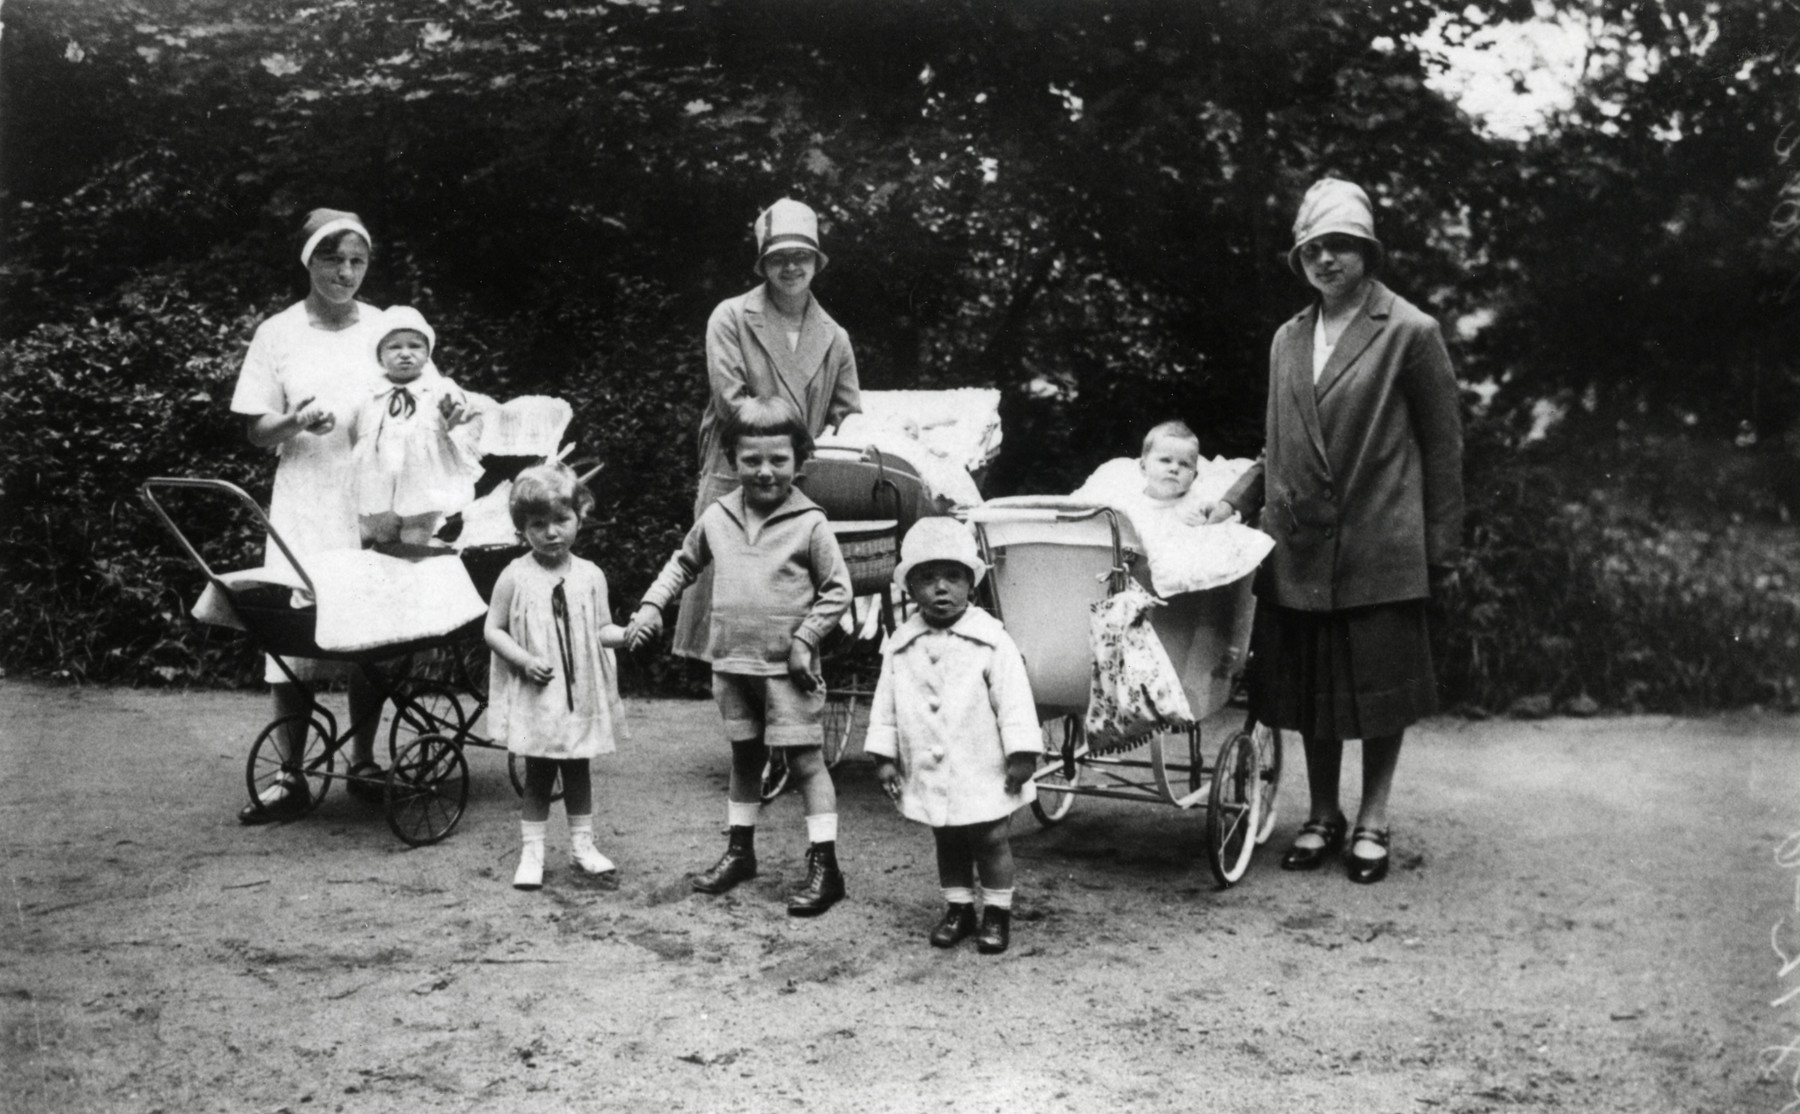 Young German-Jewish children pose with their nannies in Hain Park.  From left to right are Werner Loebl (standing in his carriage), his sister Erika, Herbert, Peter Pausn and Hanna (in her pram).